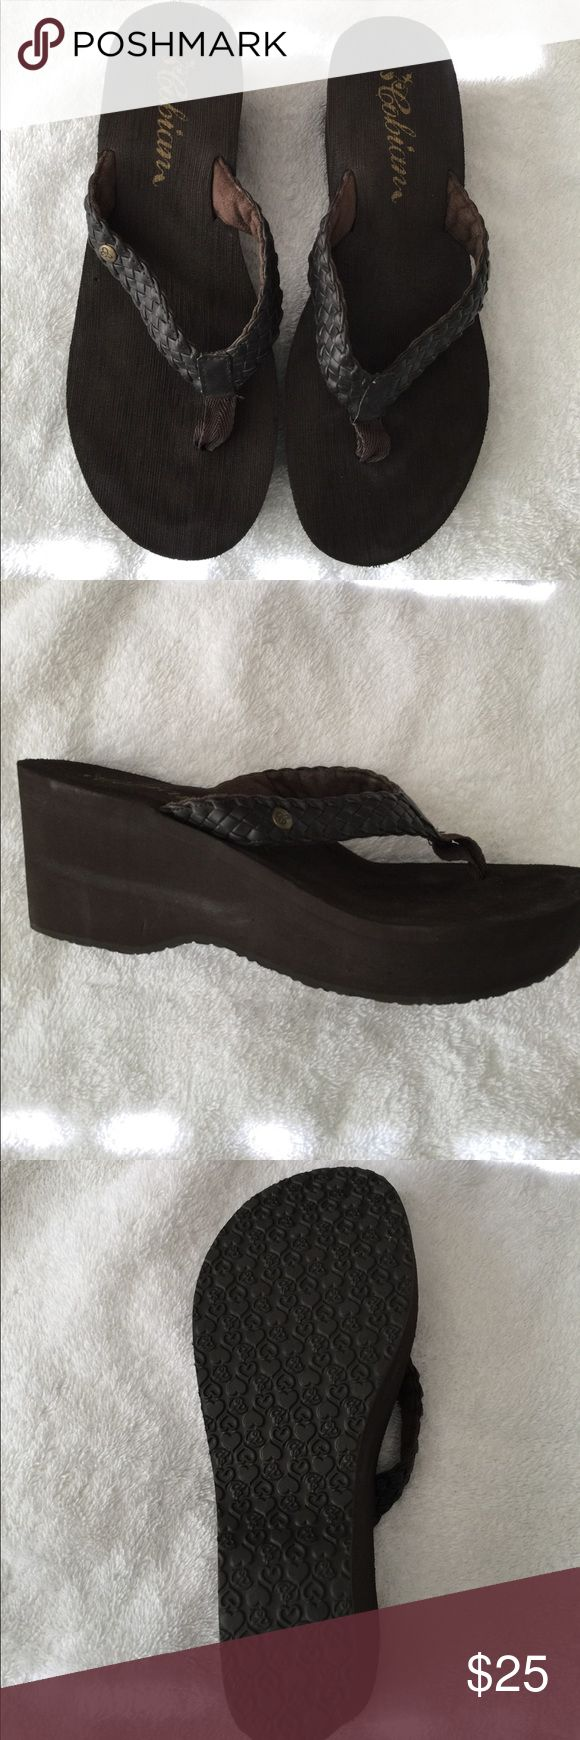 Cobian sandals 3 inch heel. Synthetic Leather straps with nylon in between toes. EUC Cobian Shoes Sandals